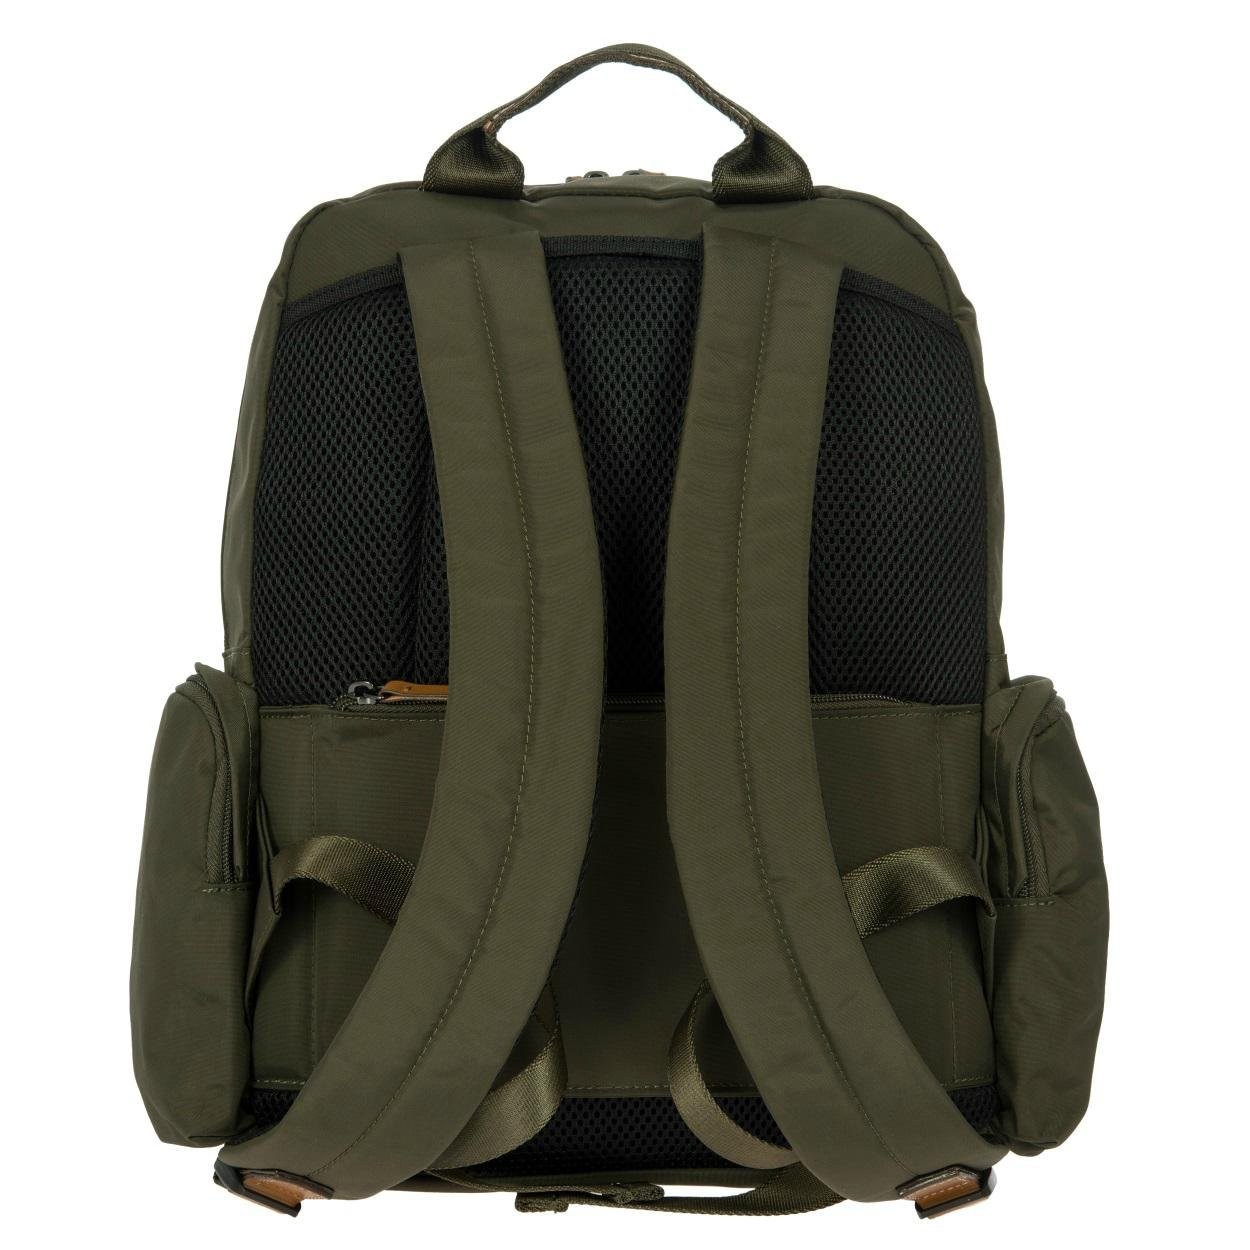 Bric's X-Bag/x-Travel 2.0 Nomad Laptop|Tablet Business Backpack, Navy, One Size by Bric's (Image #3)